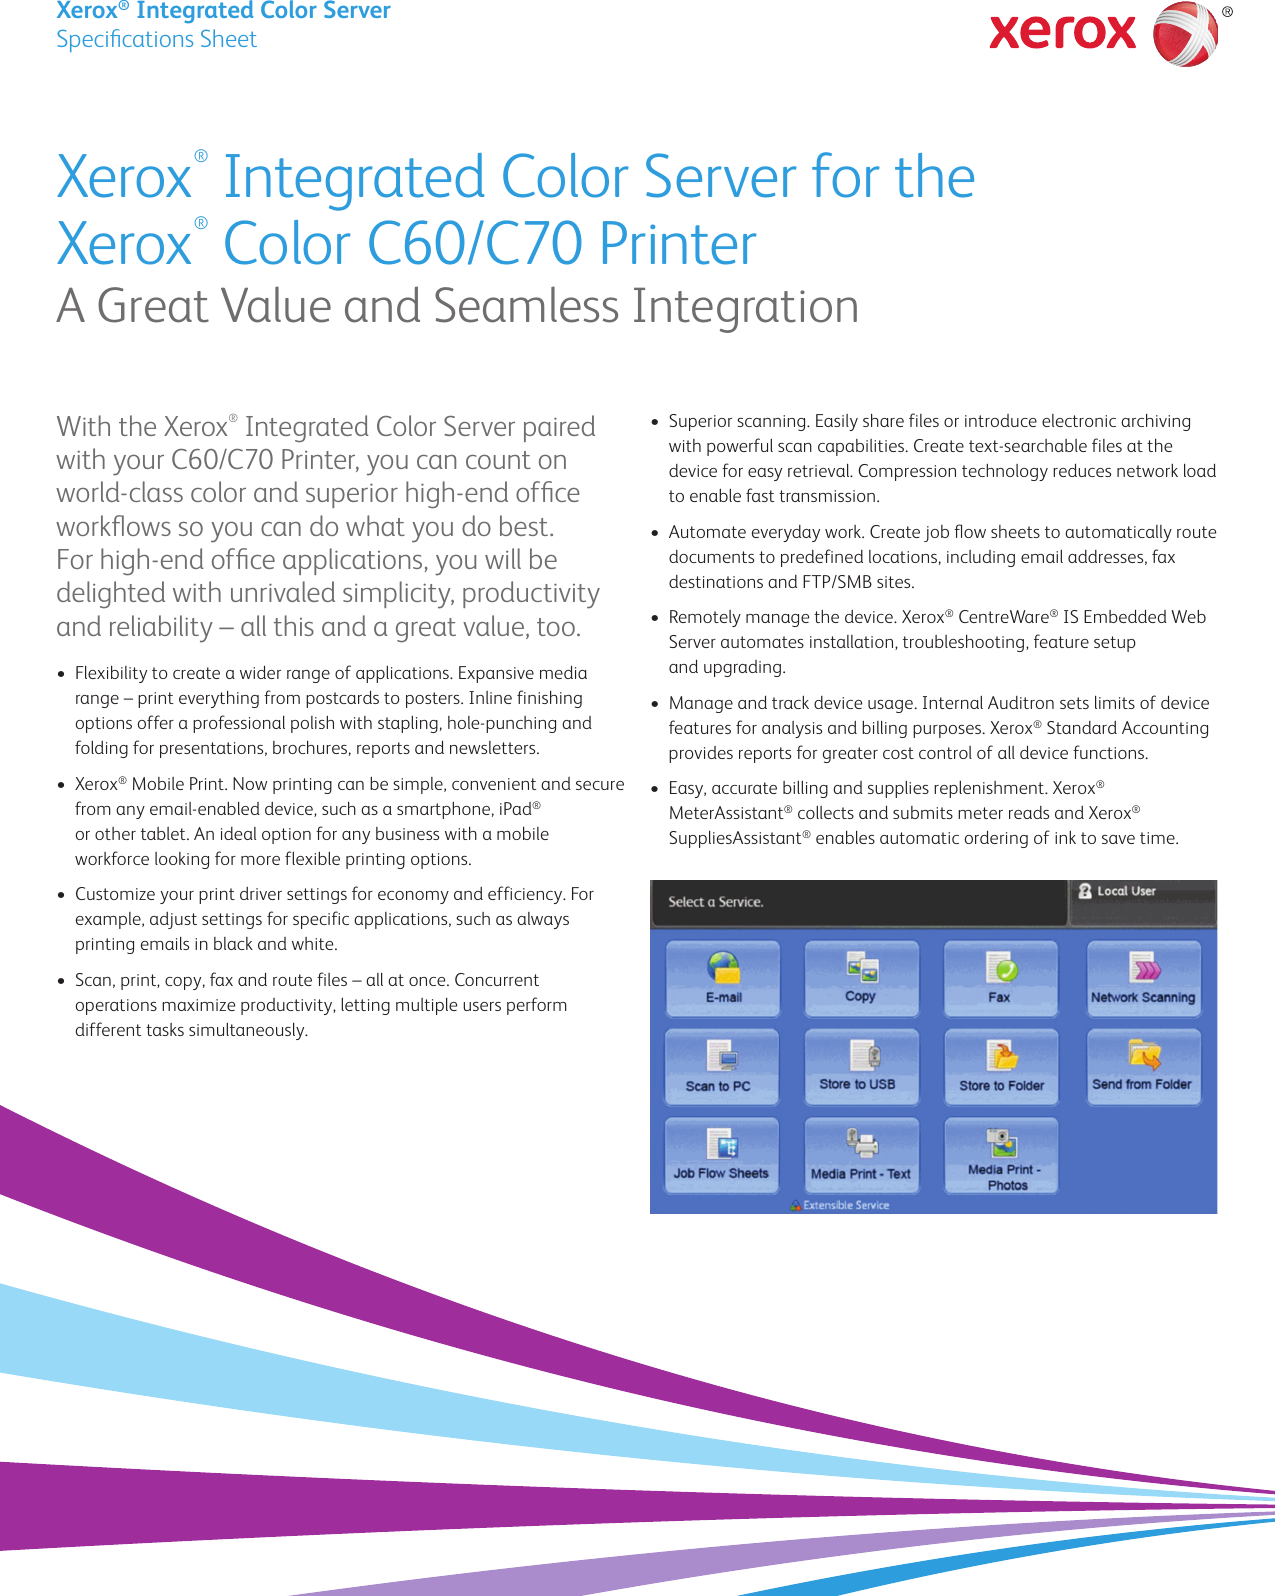 Xerox Color C60 C70 Specifications Xerox® Integrated Server